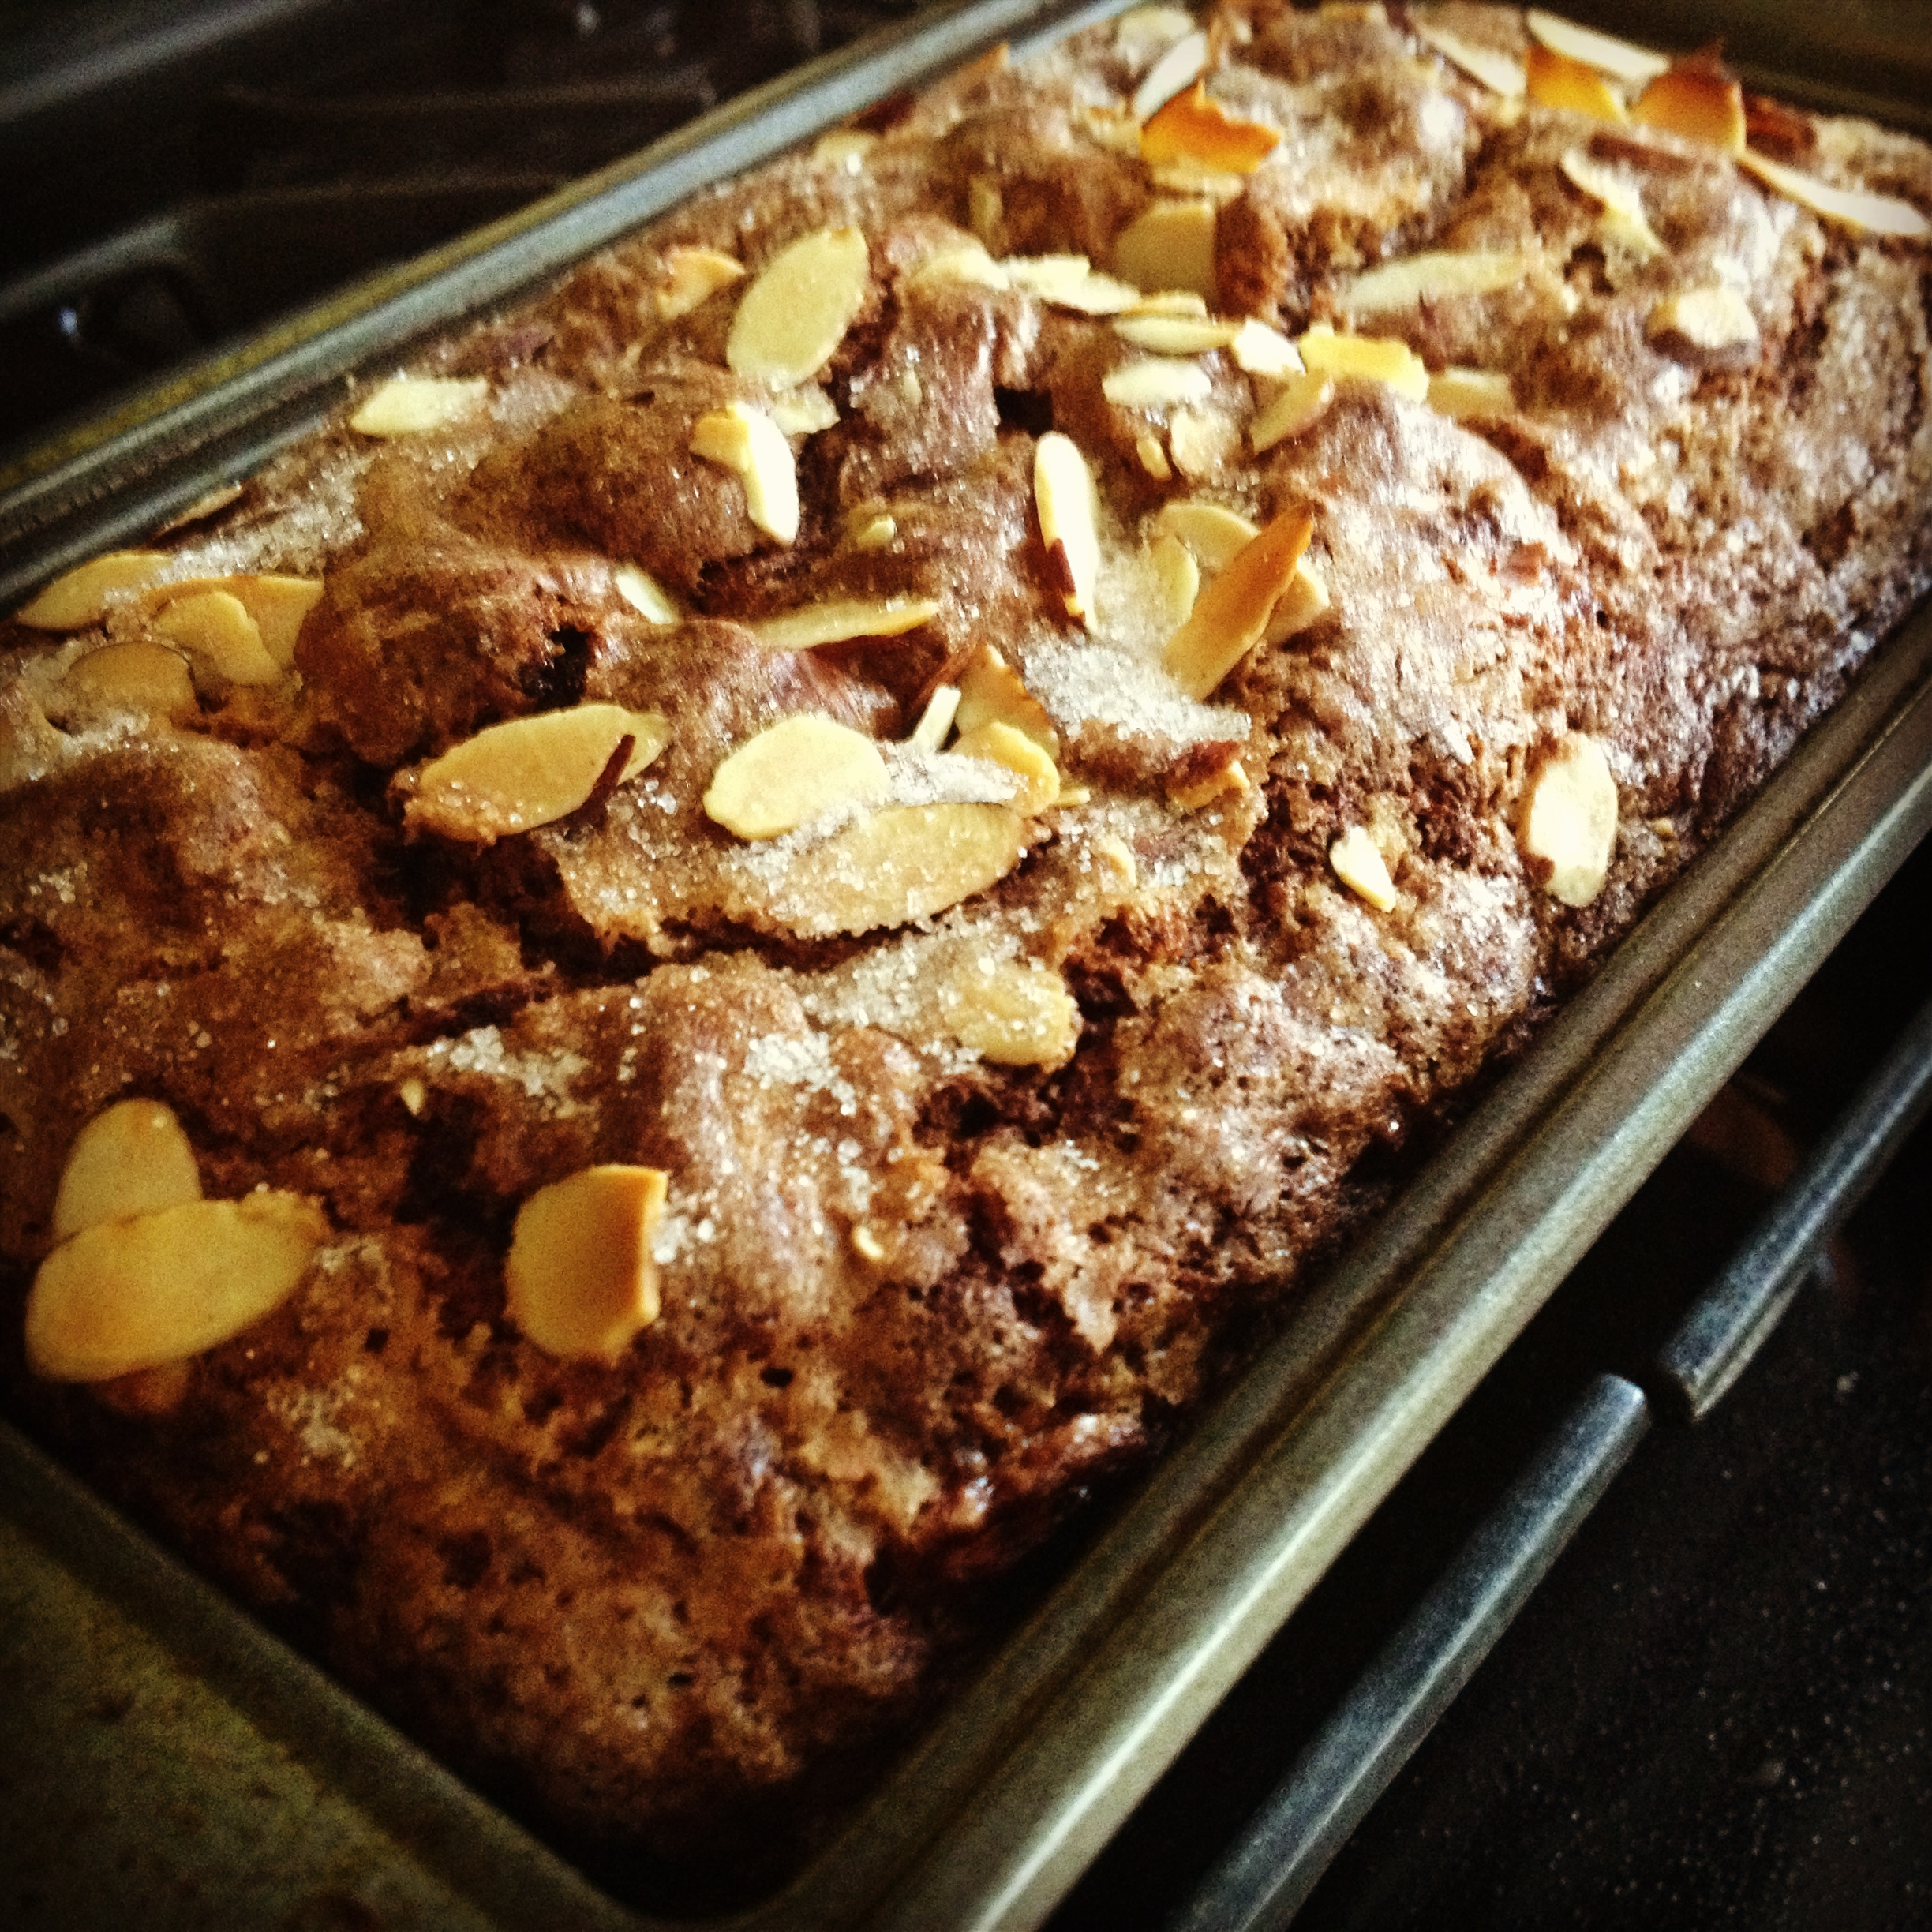 Nutella Banana Bread, fresh from the oven